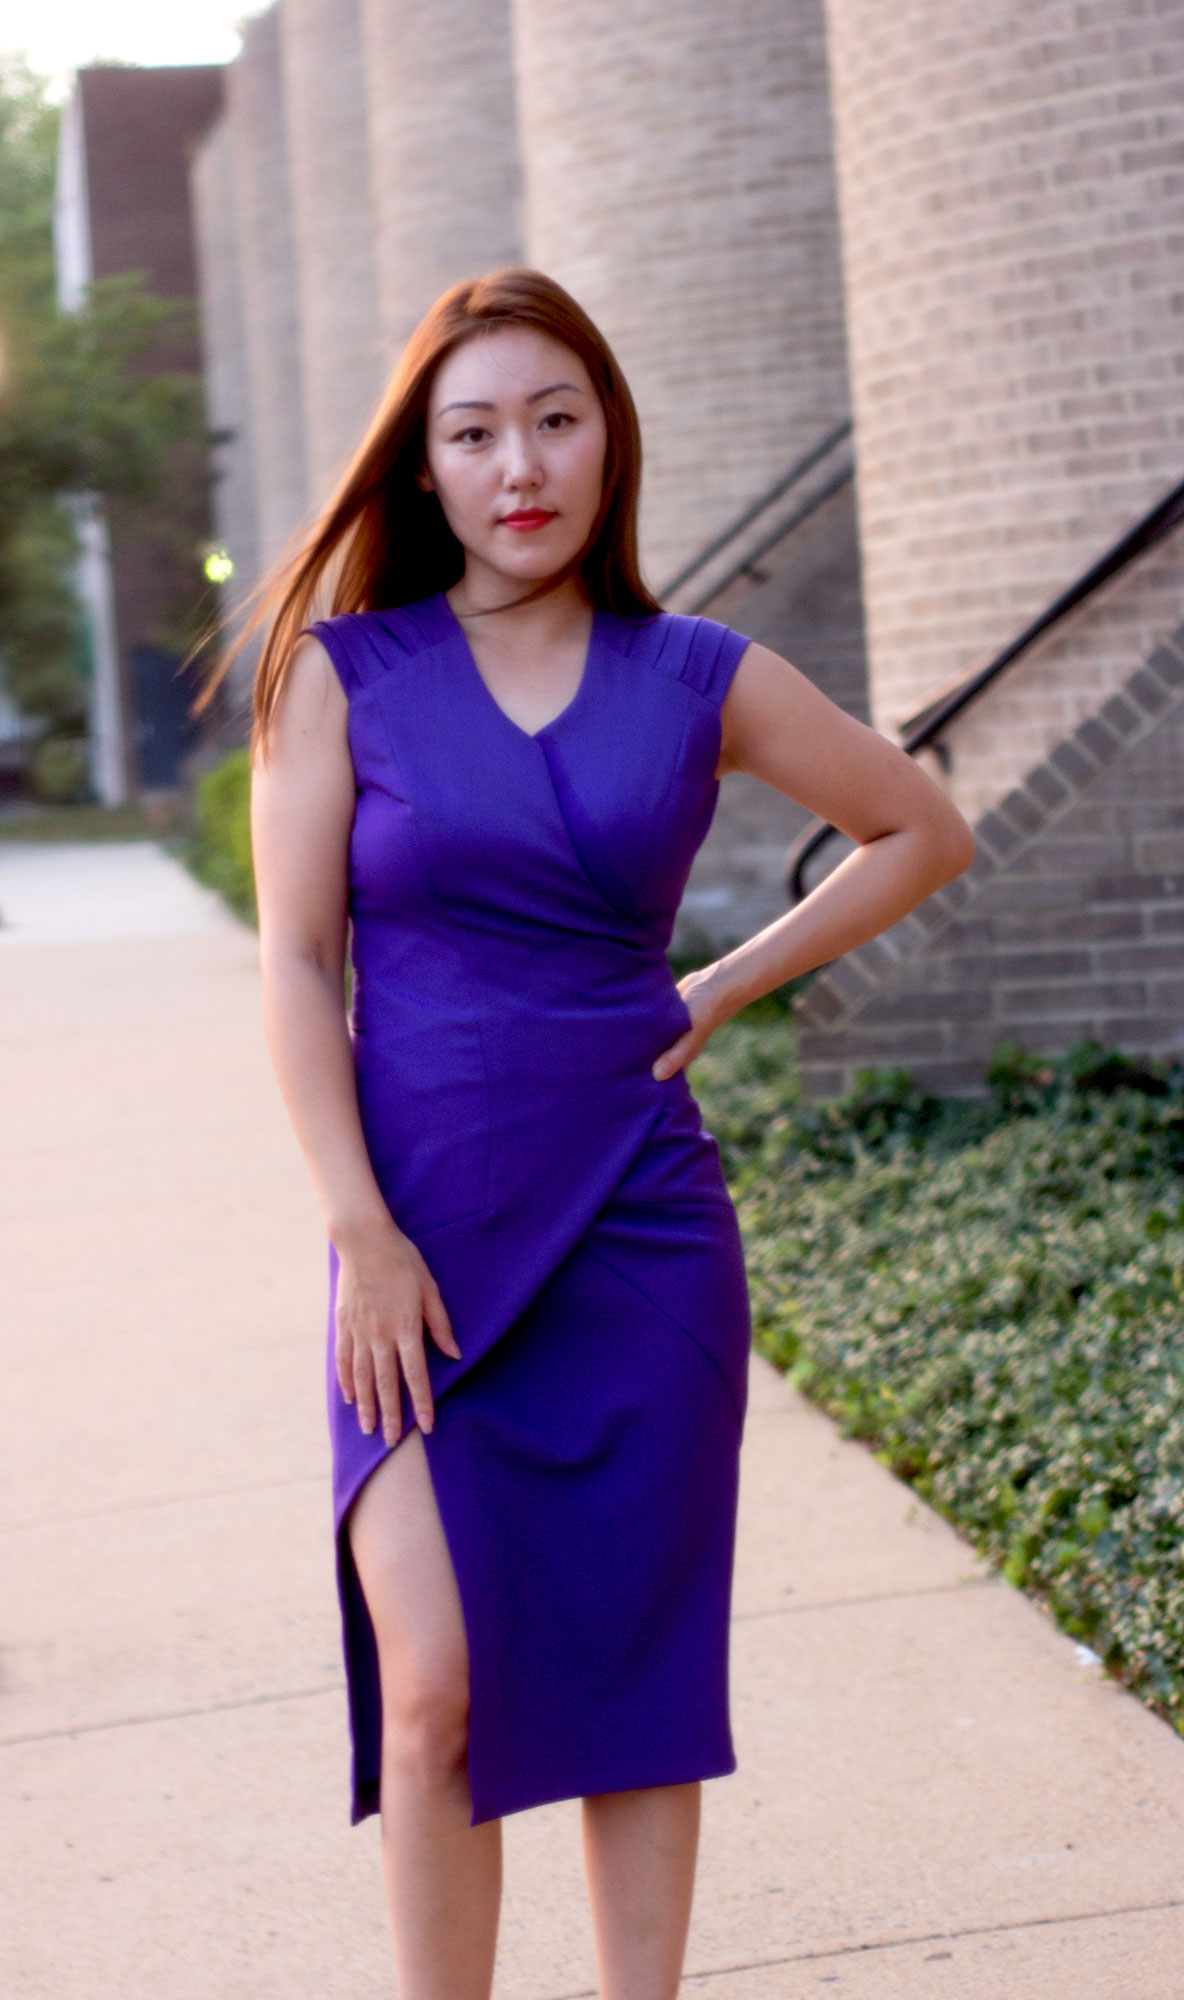 gegi-couture-purple-dress2